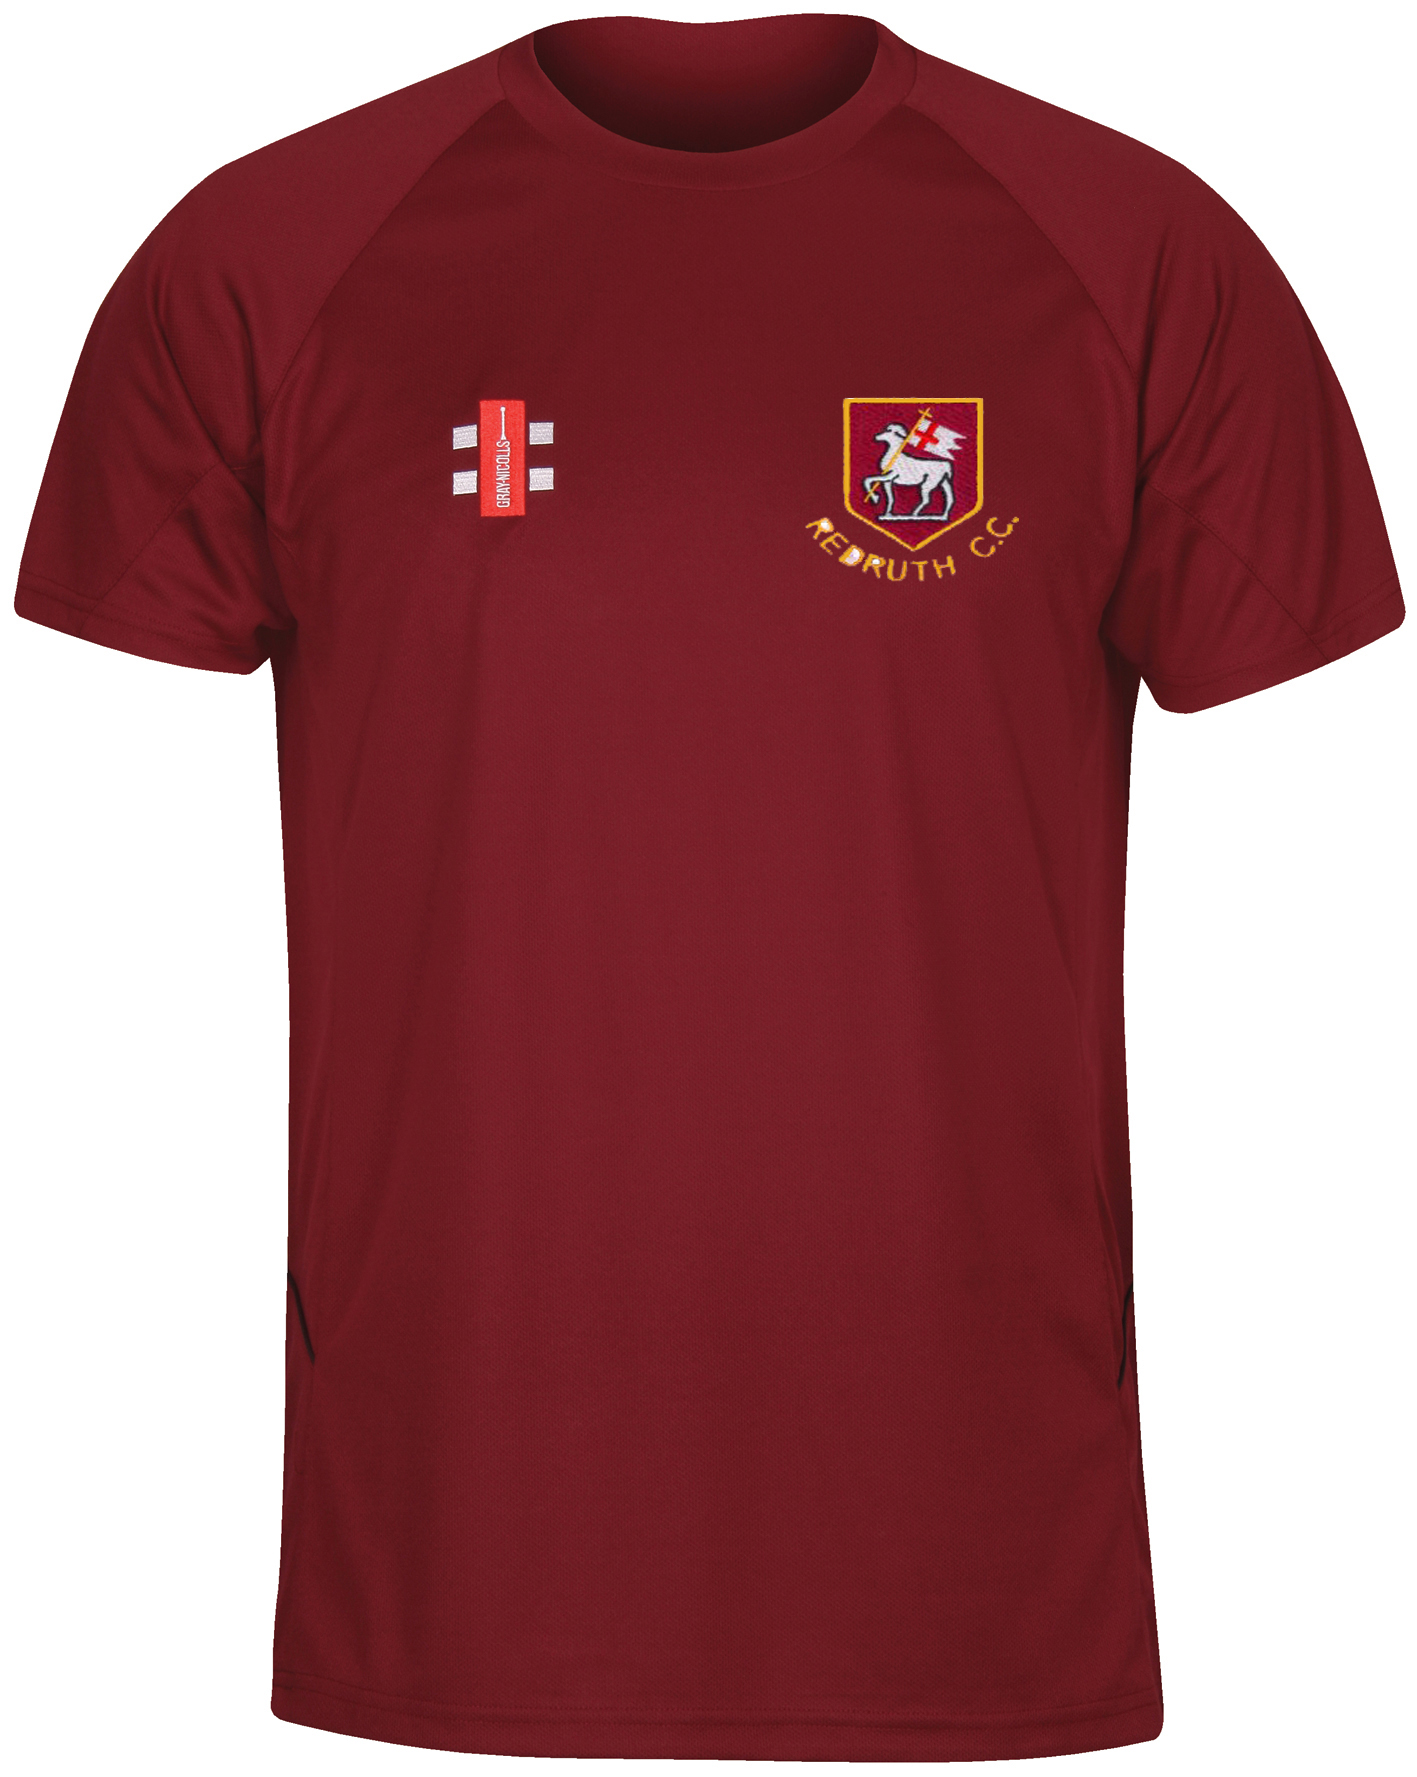 Redruth CC Matrix training Tee